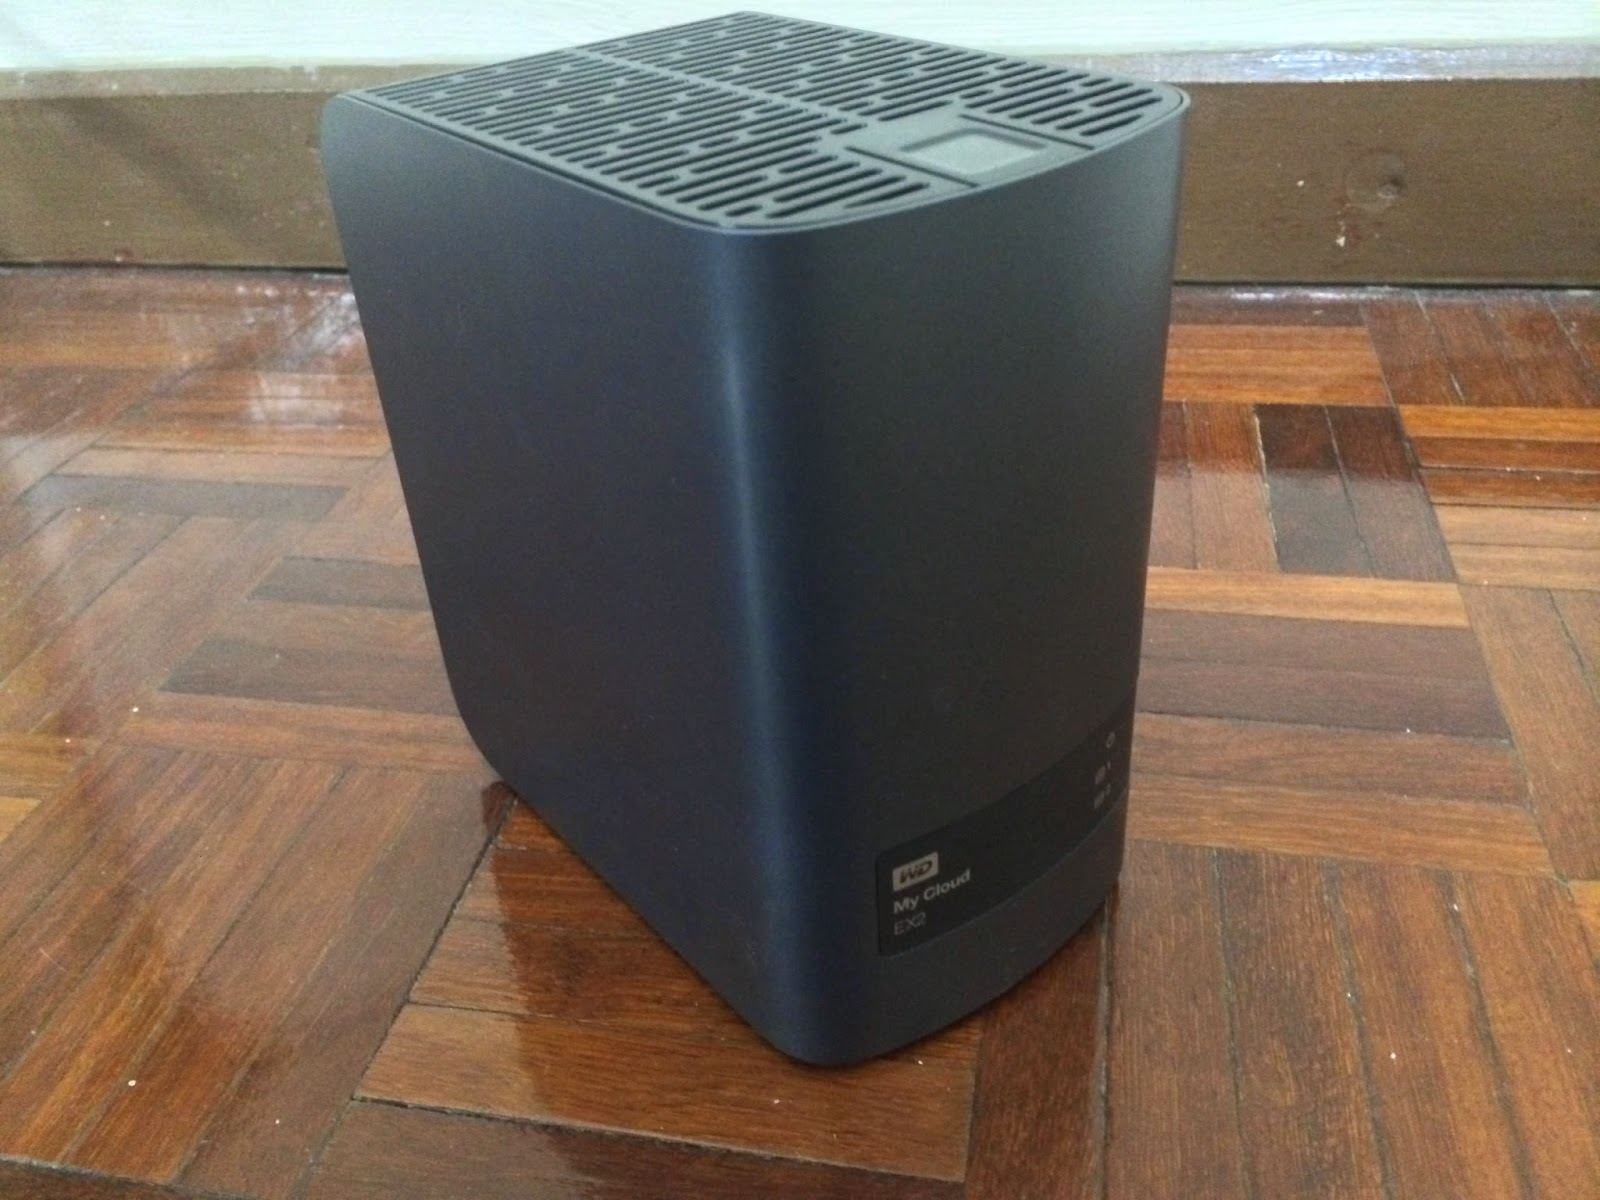 Unboxing & Review: Western Digital My Cloud EX2 130